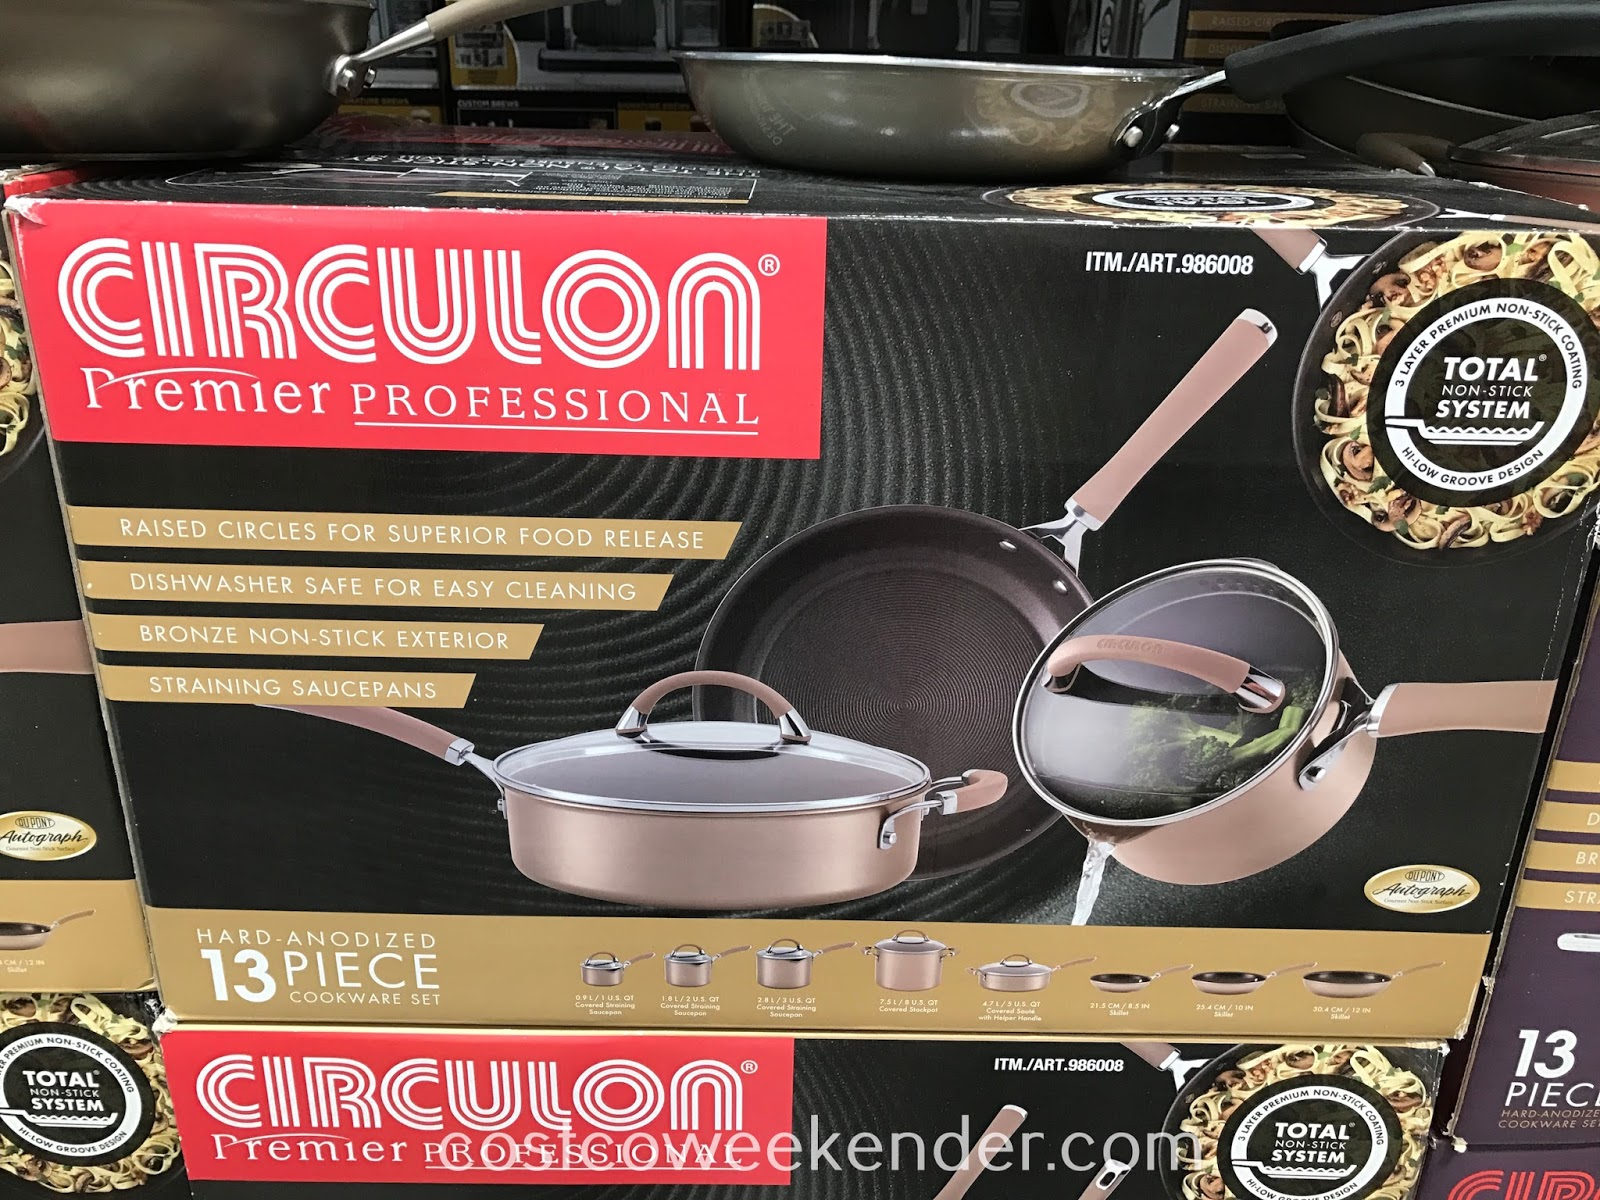 Easily prepare homemade meals for your family with the Circulon 13 piece Hard-Anodized Cookware Set